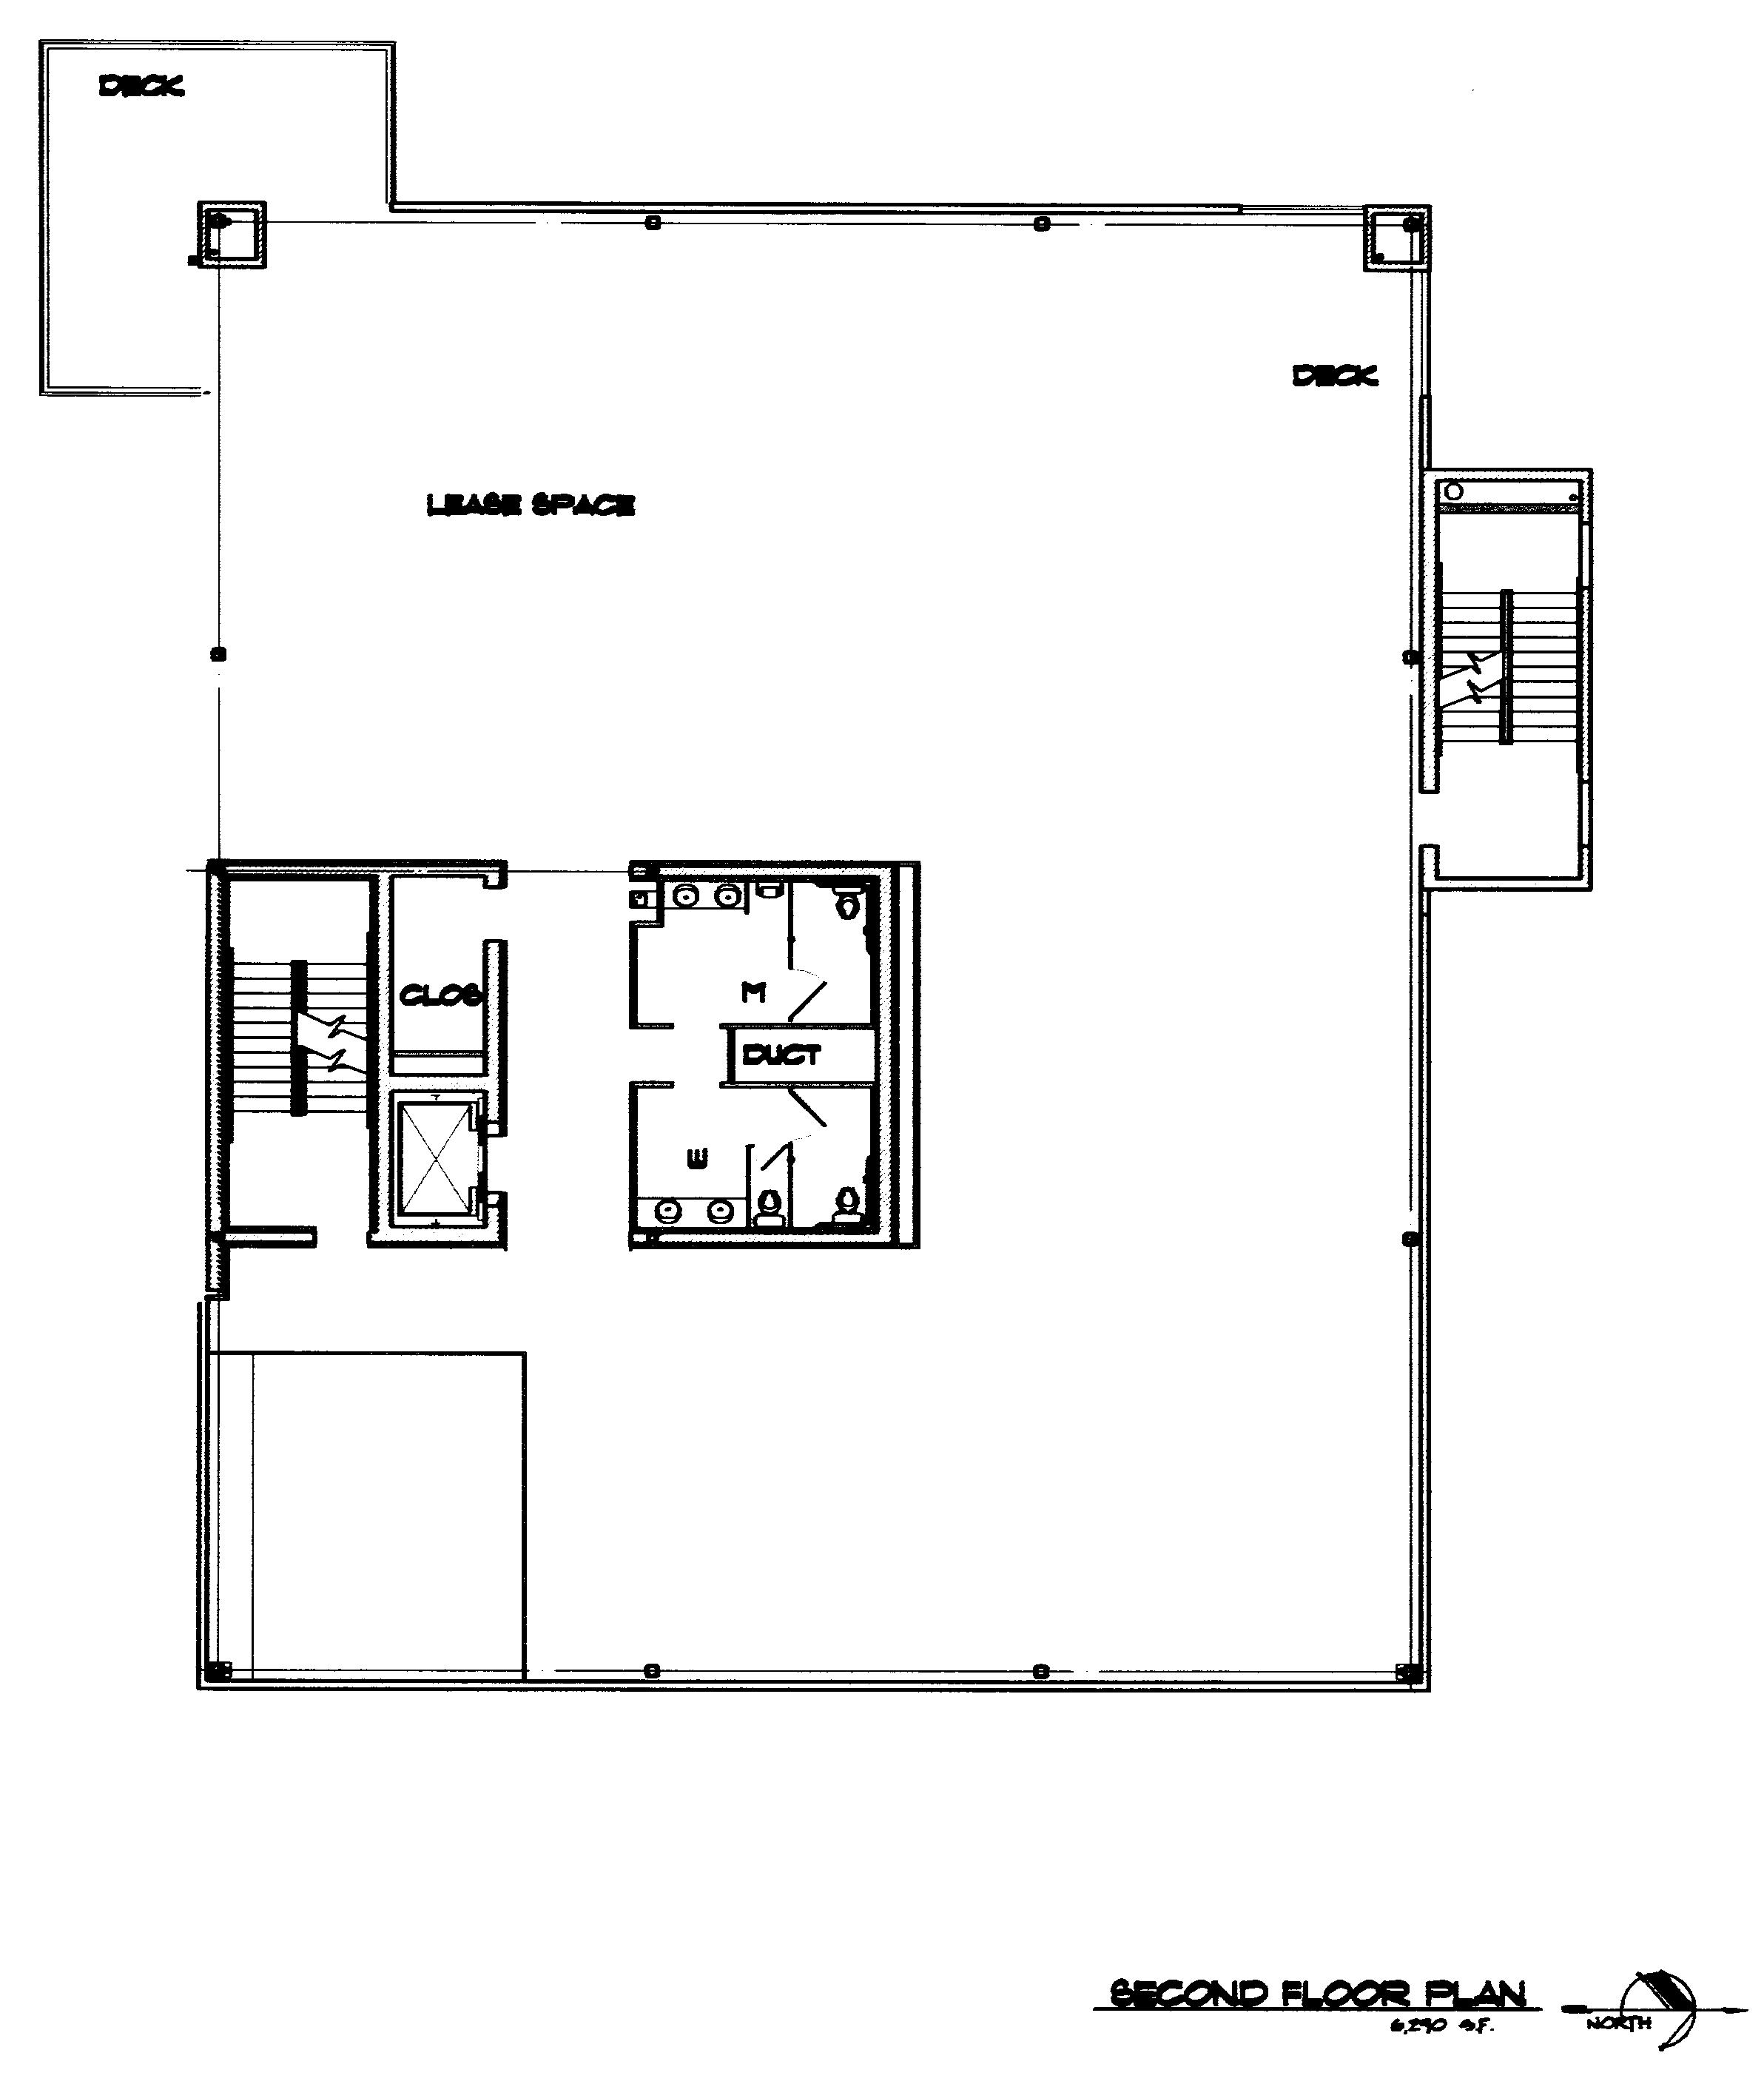 Kurt austin properties office building for Small office floor plan